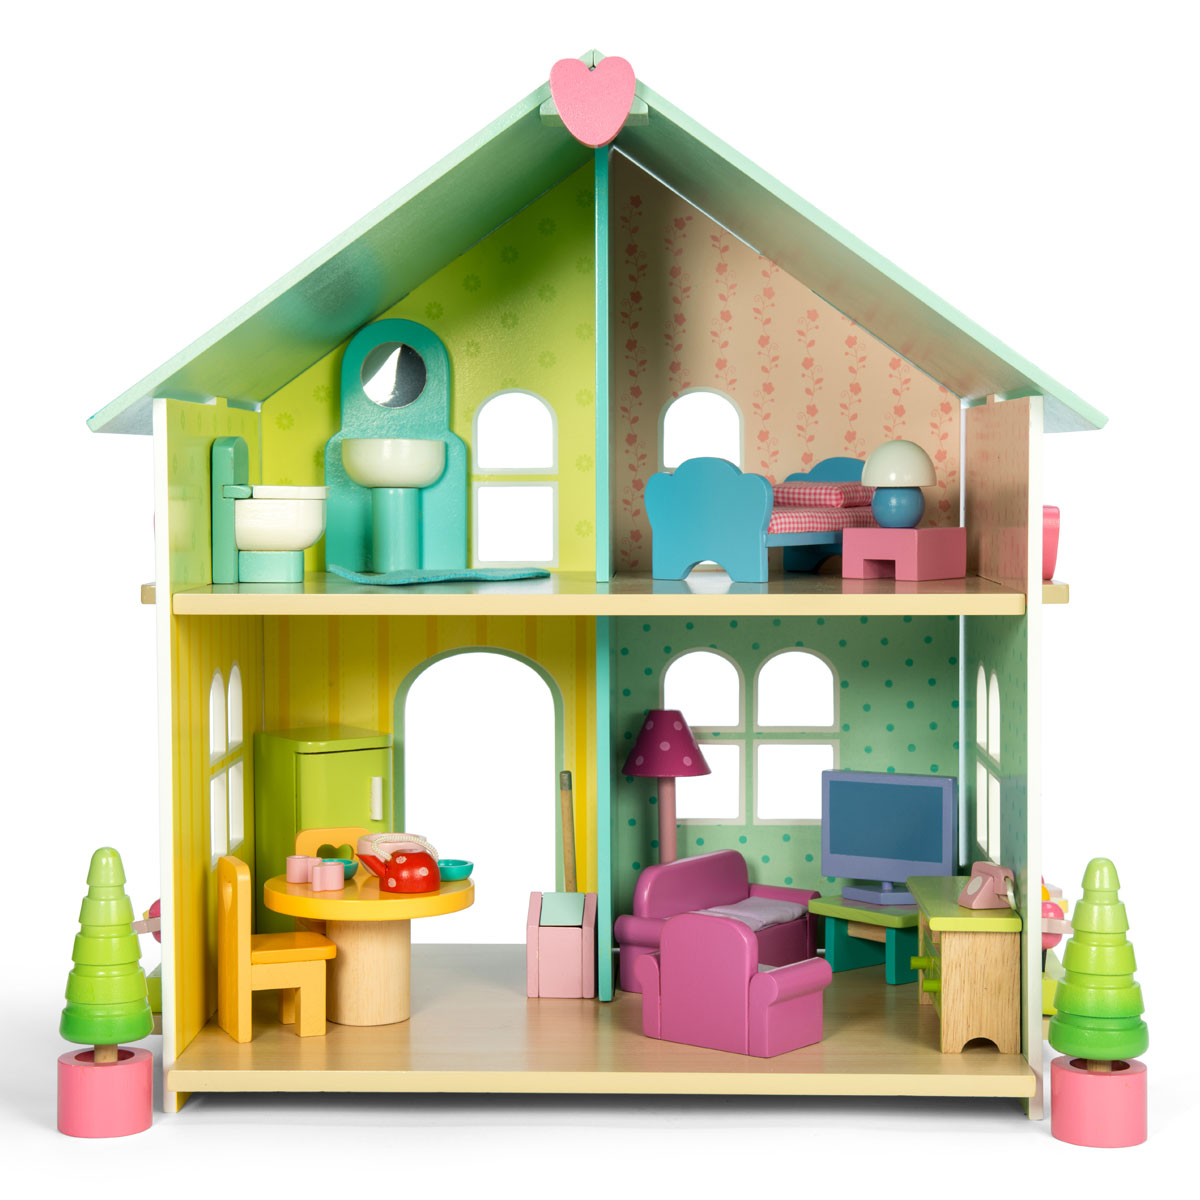 Le toy van evergreen house h171 pirum for Evergreen house